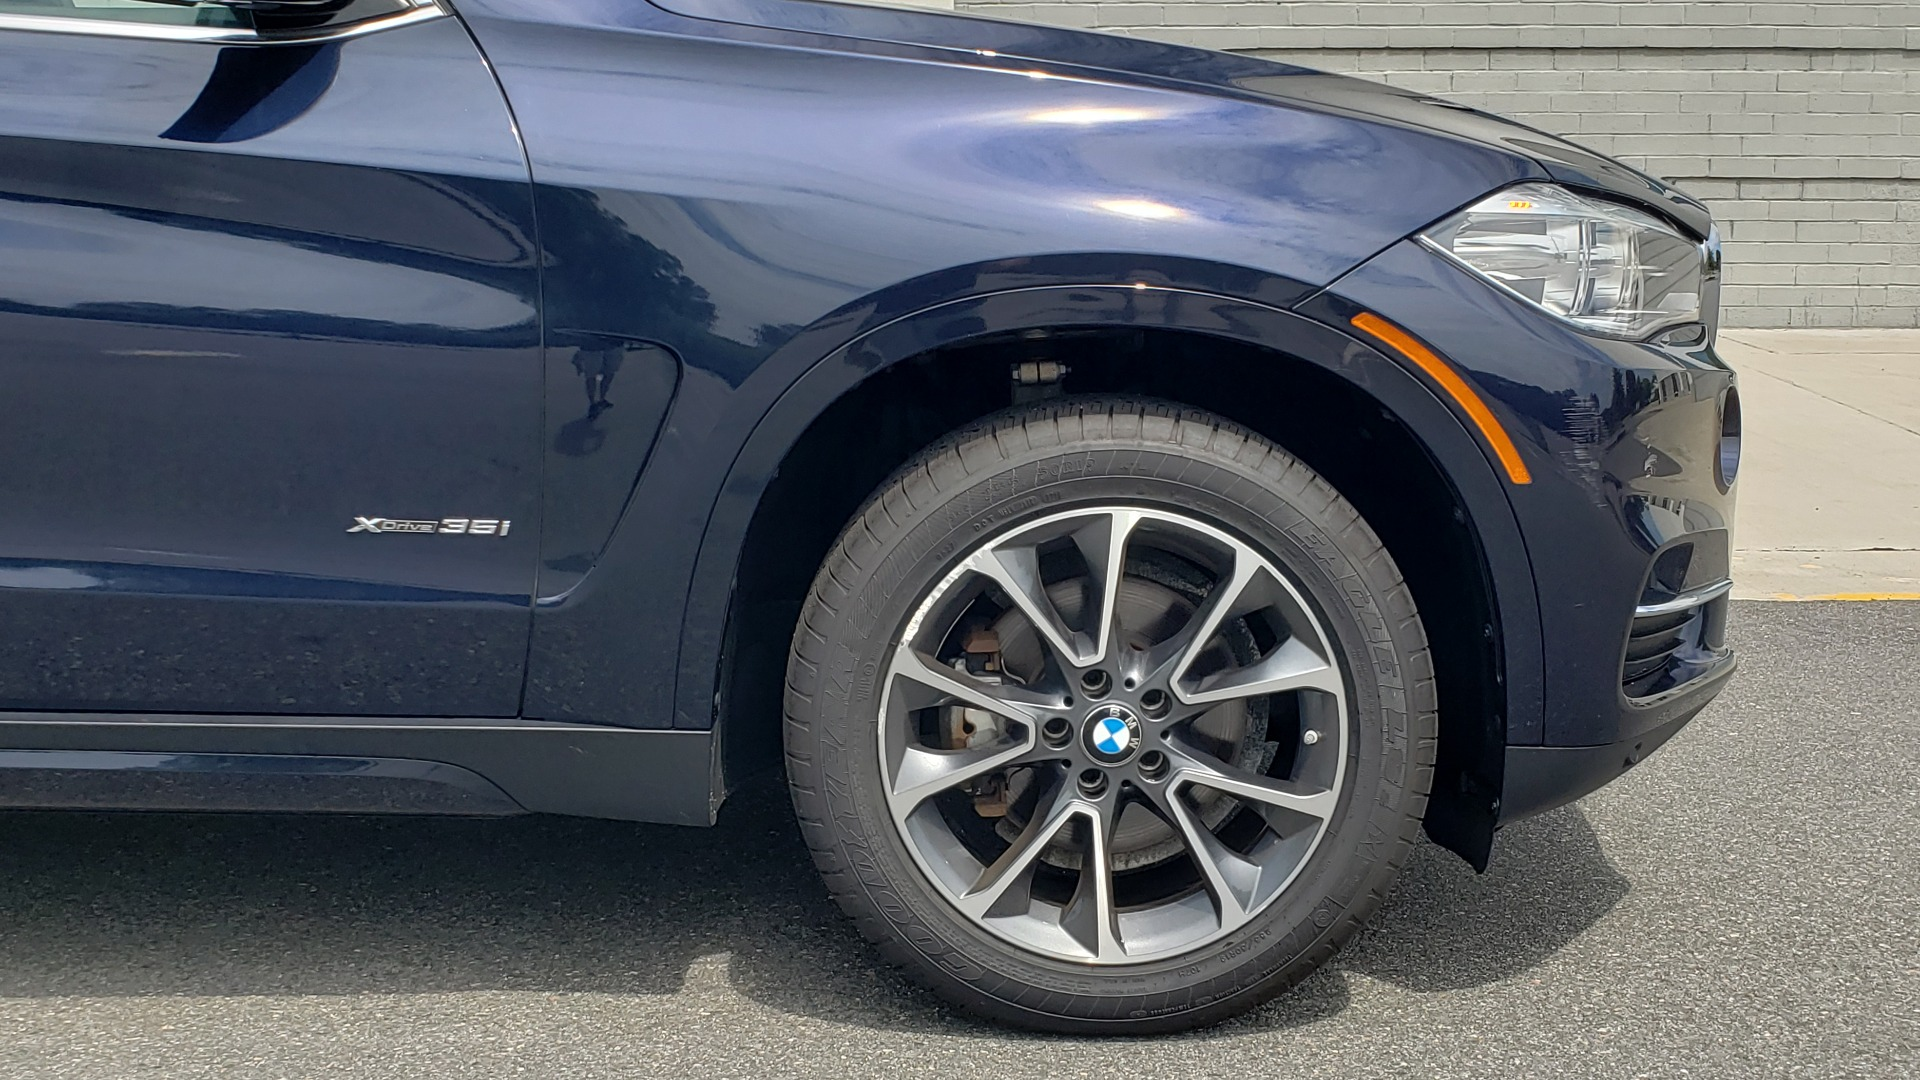 Used 2018 BMW X5 XDRIVE35I PREMIUM / LUXURY / DRVR ASST / HUD / LANE WARNING / REARVIEW for sale $43,695 at Formula Imports in Charlotte NC 28227 86